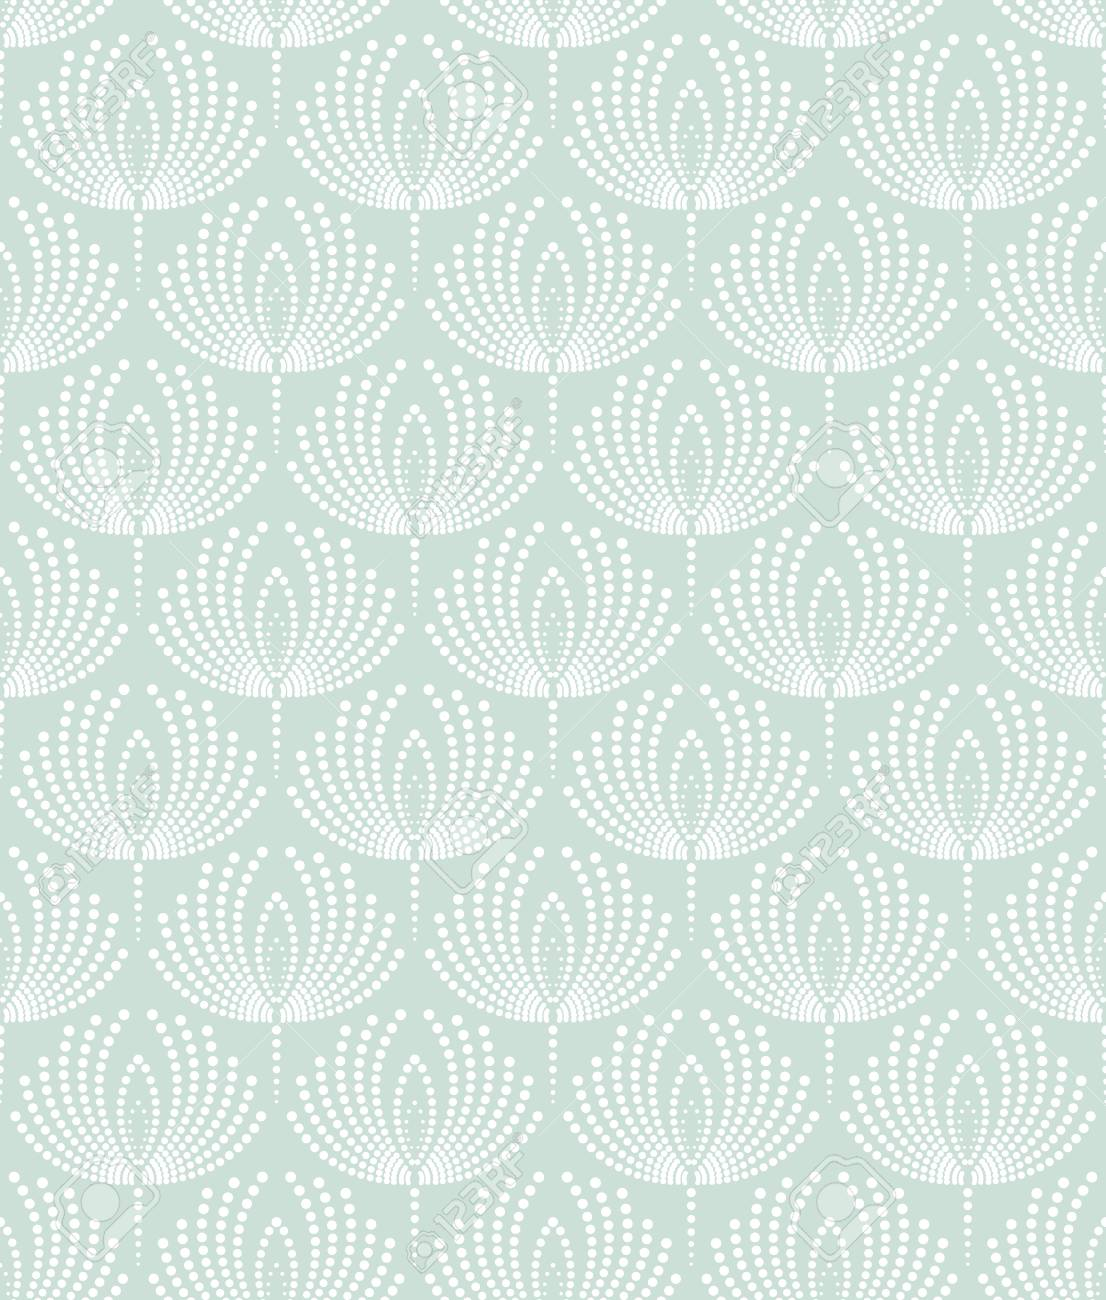 Floral Pattern With Points Wallpaper Seamless Vector Background Blue And White Ornament Foto